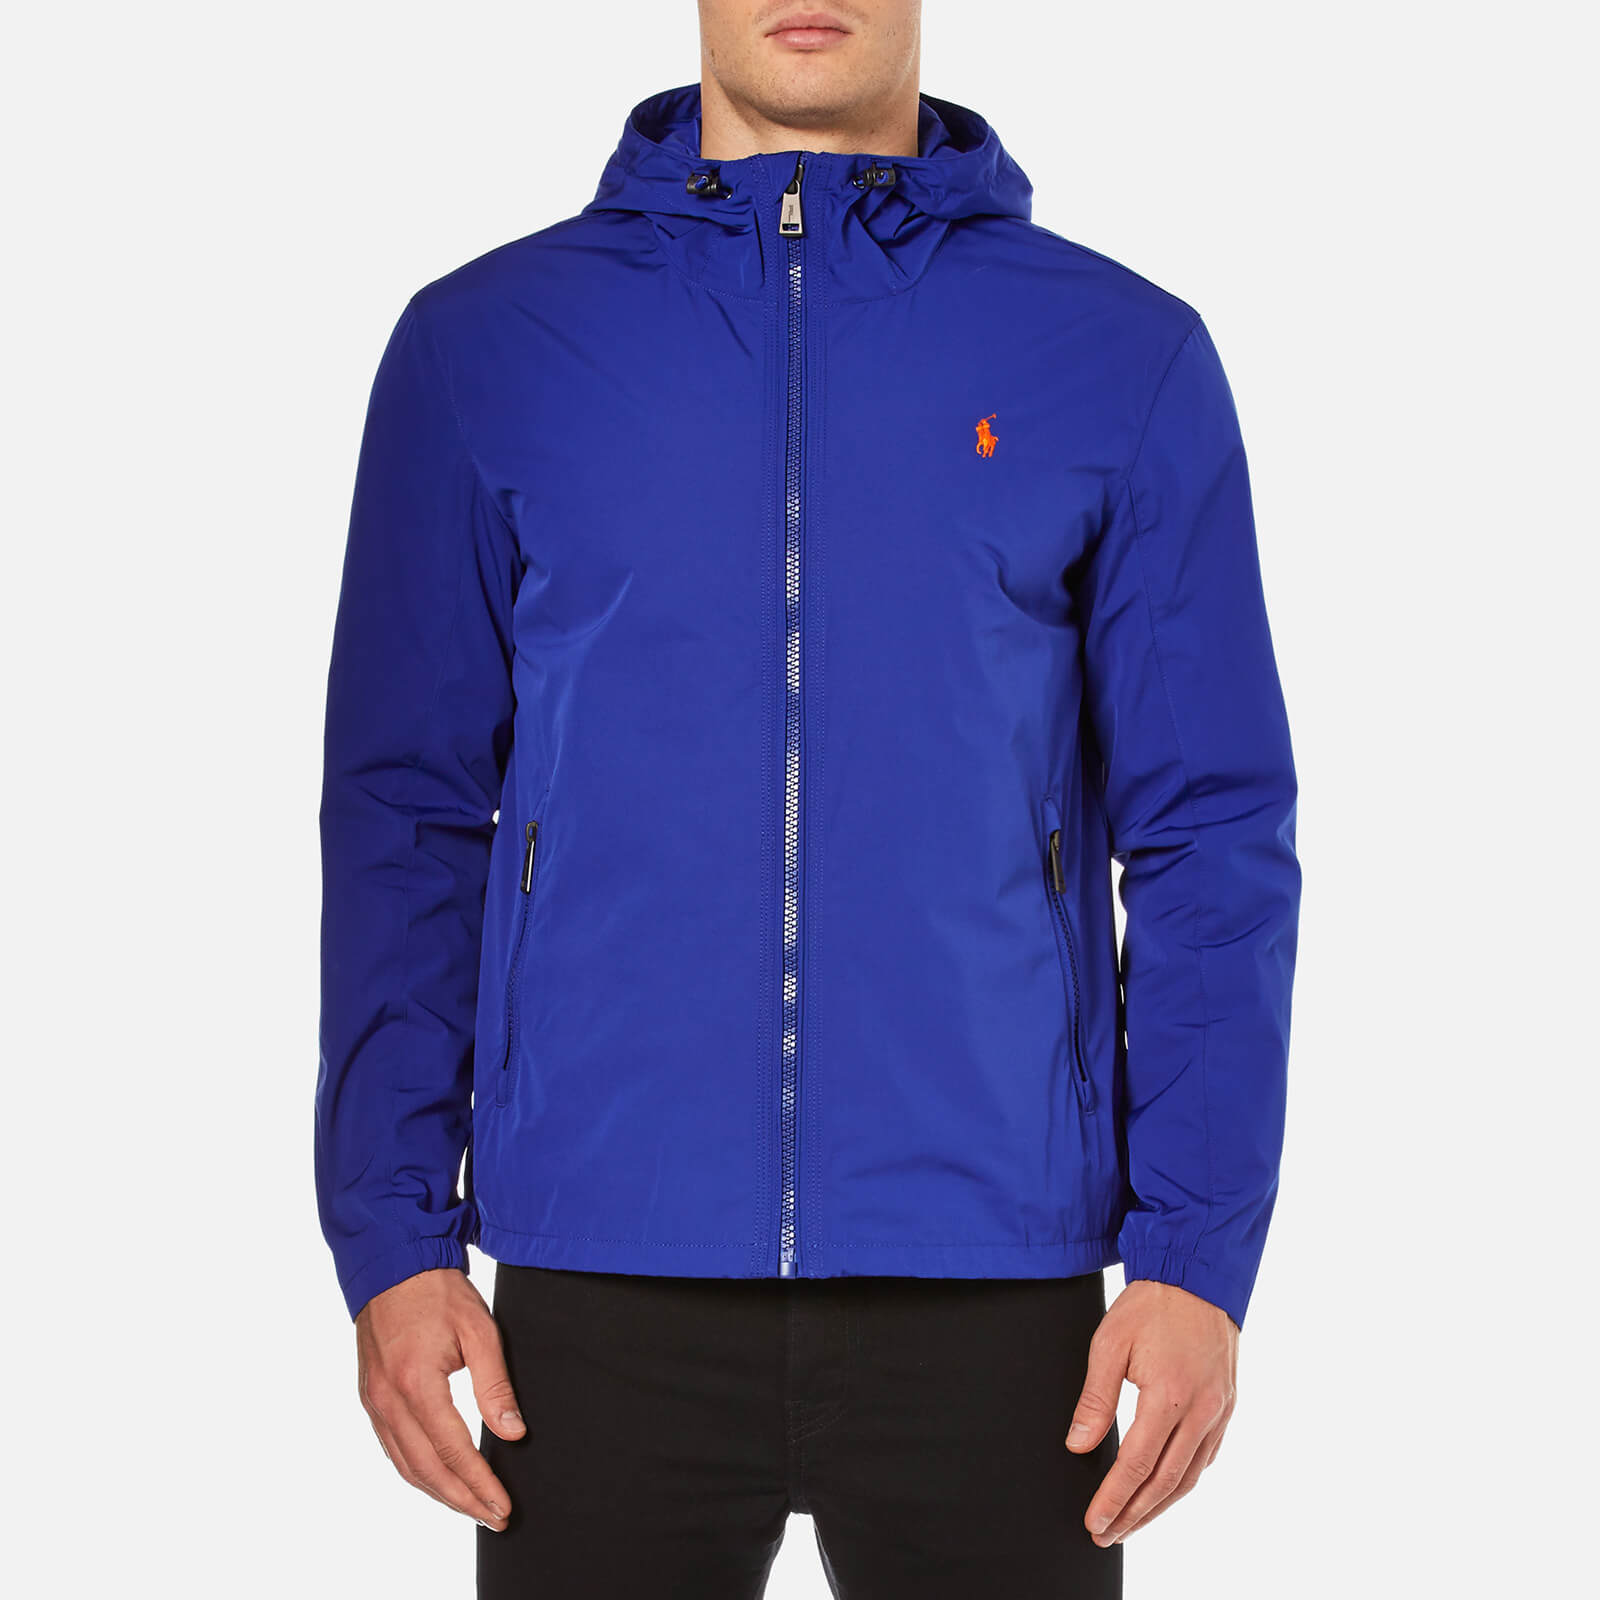 3a775d8f Polo Ralph Lauren Men's Thorpe Anorak Lined Jacket - College Royal